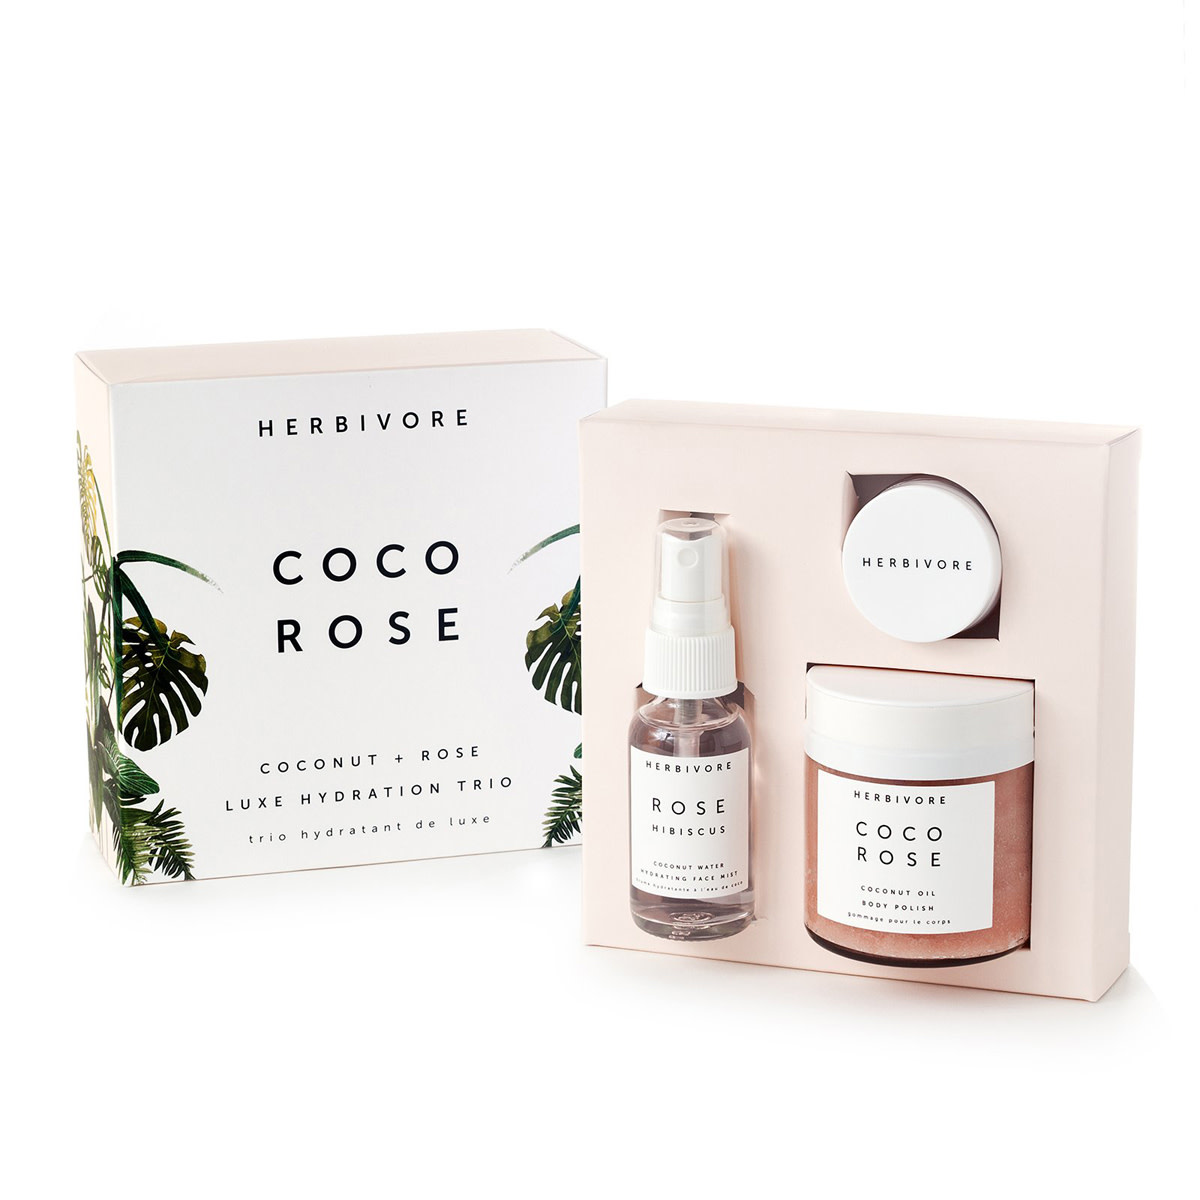 herbivore botanicals HB AP - The Coco Rose Luxe Hydration Trio